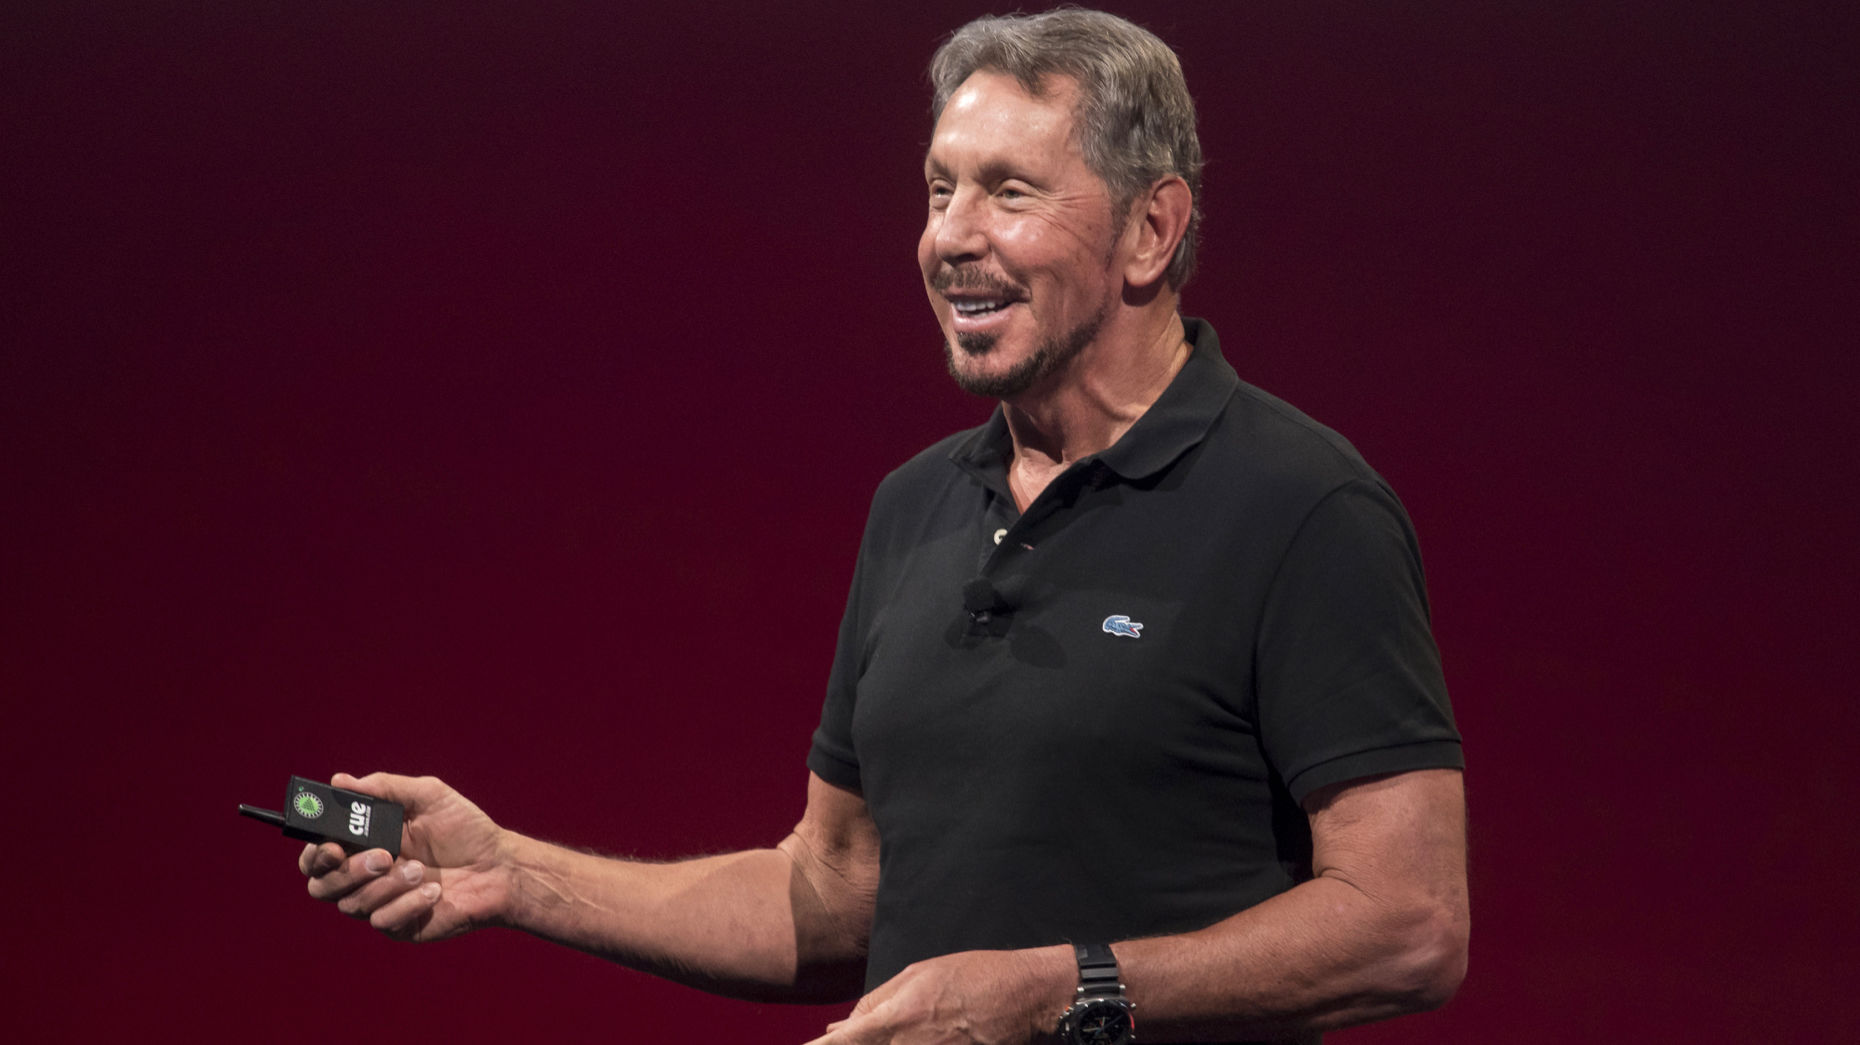 Oracle chairman and chief technology officer Larry Ellison. Photo by Bloomberg